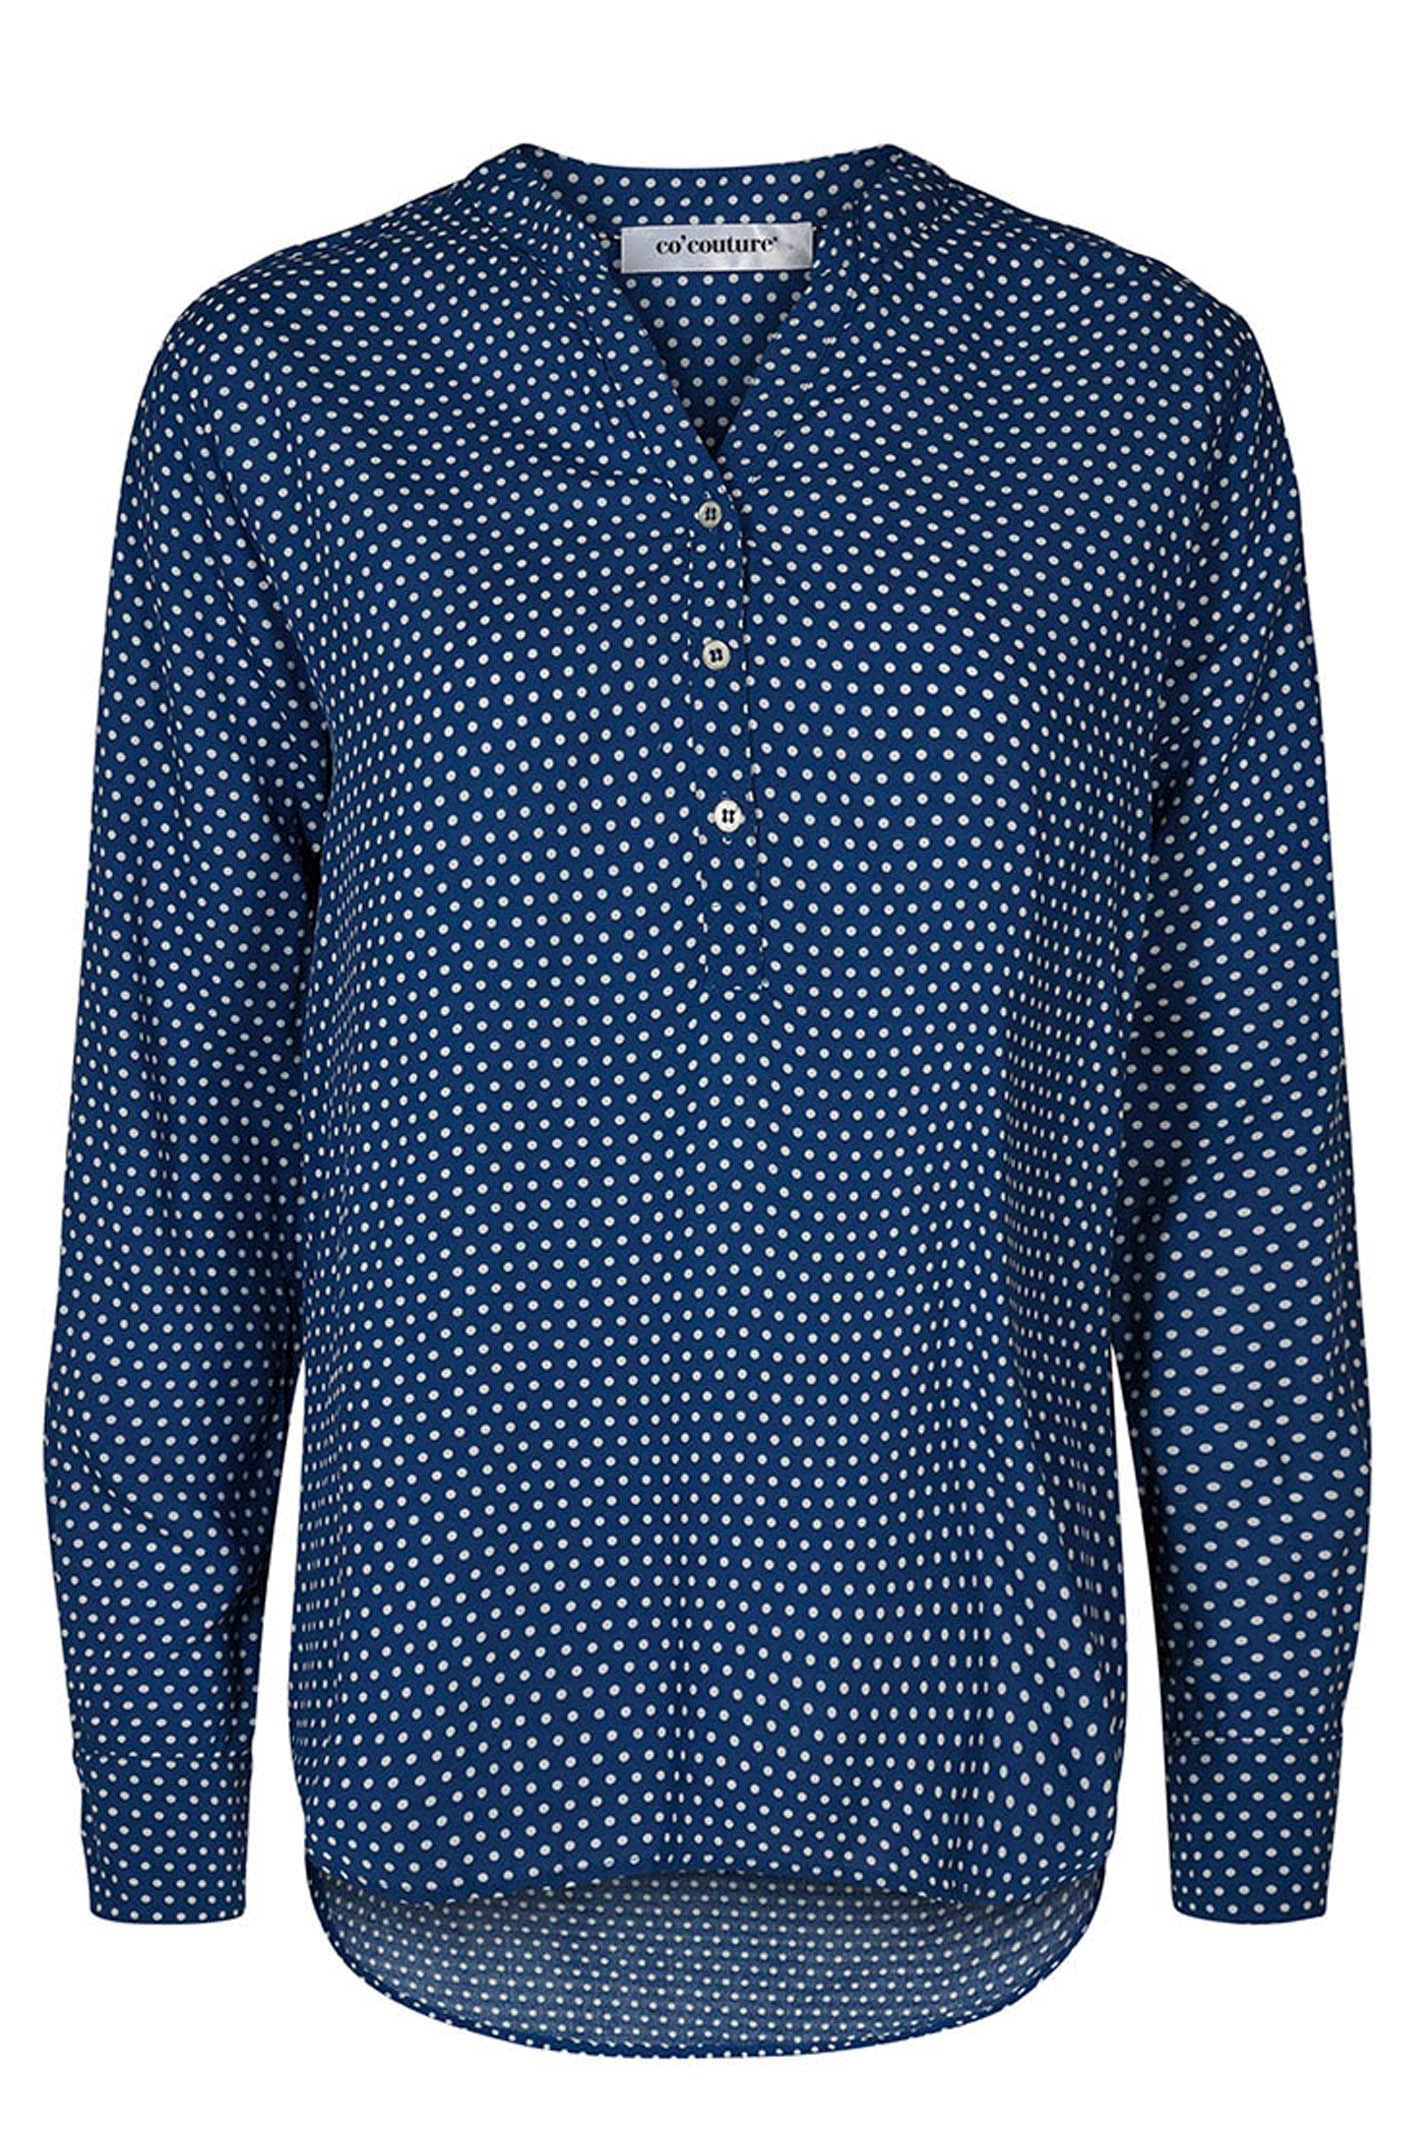 CO'COUTURE COCO ALBI DOT 95187 Navy